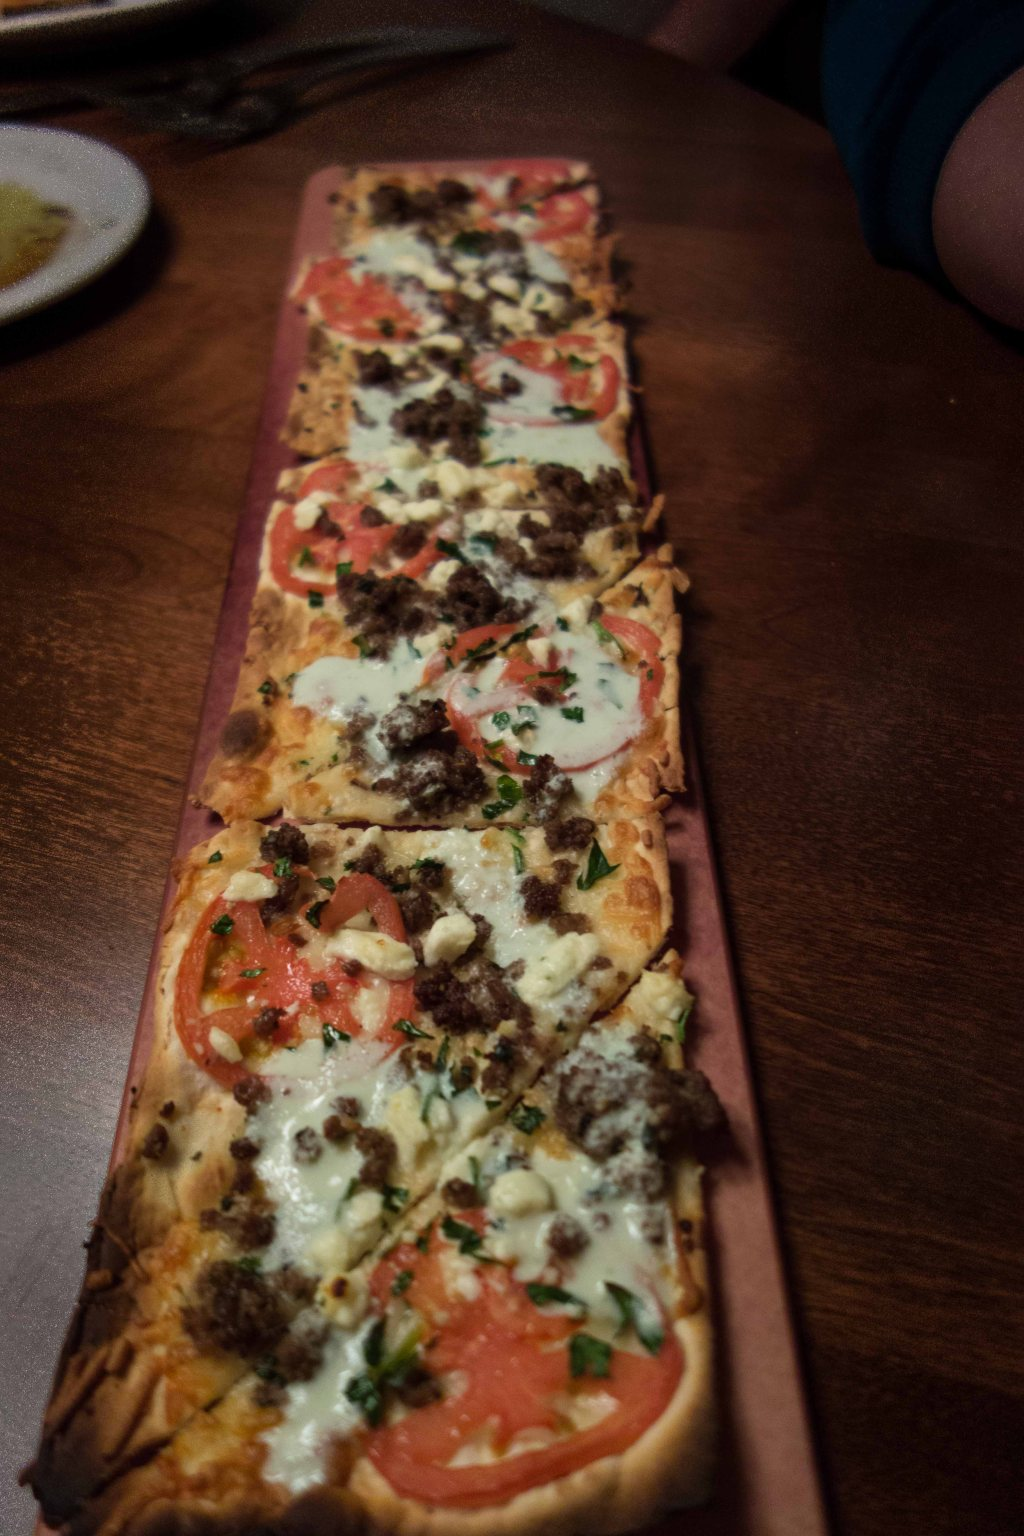 A re-imagining of the gyro, served on flatbread